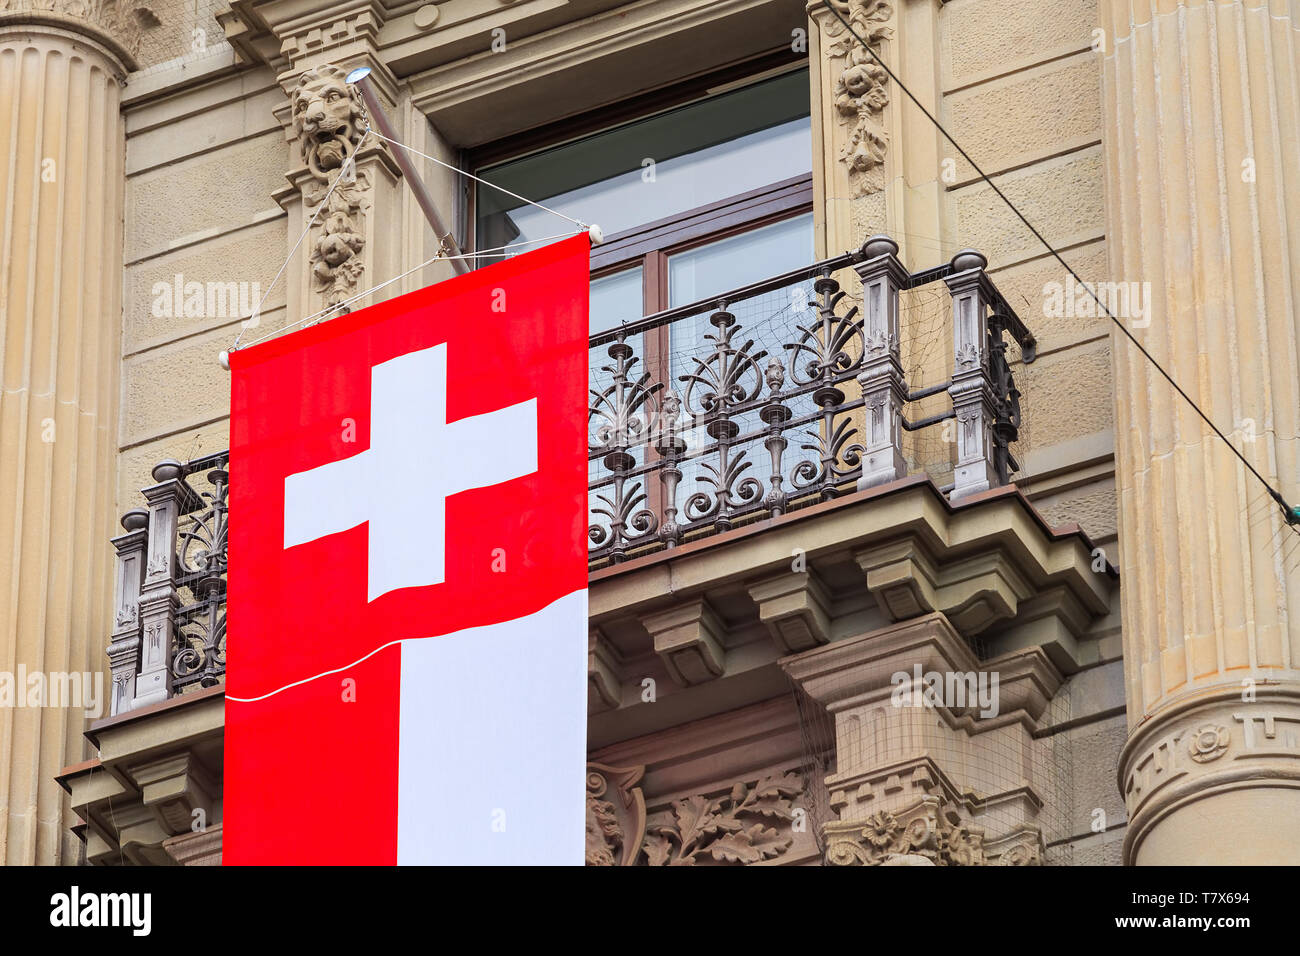 Zurich, Switzerland - August 1, 2016: a balcony of the Credit Suisse building at Paradeplatz square in the city of Zurich decorated with a flag of Swi - Stock Image